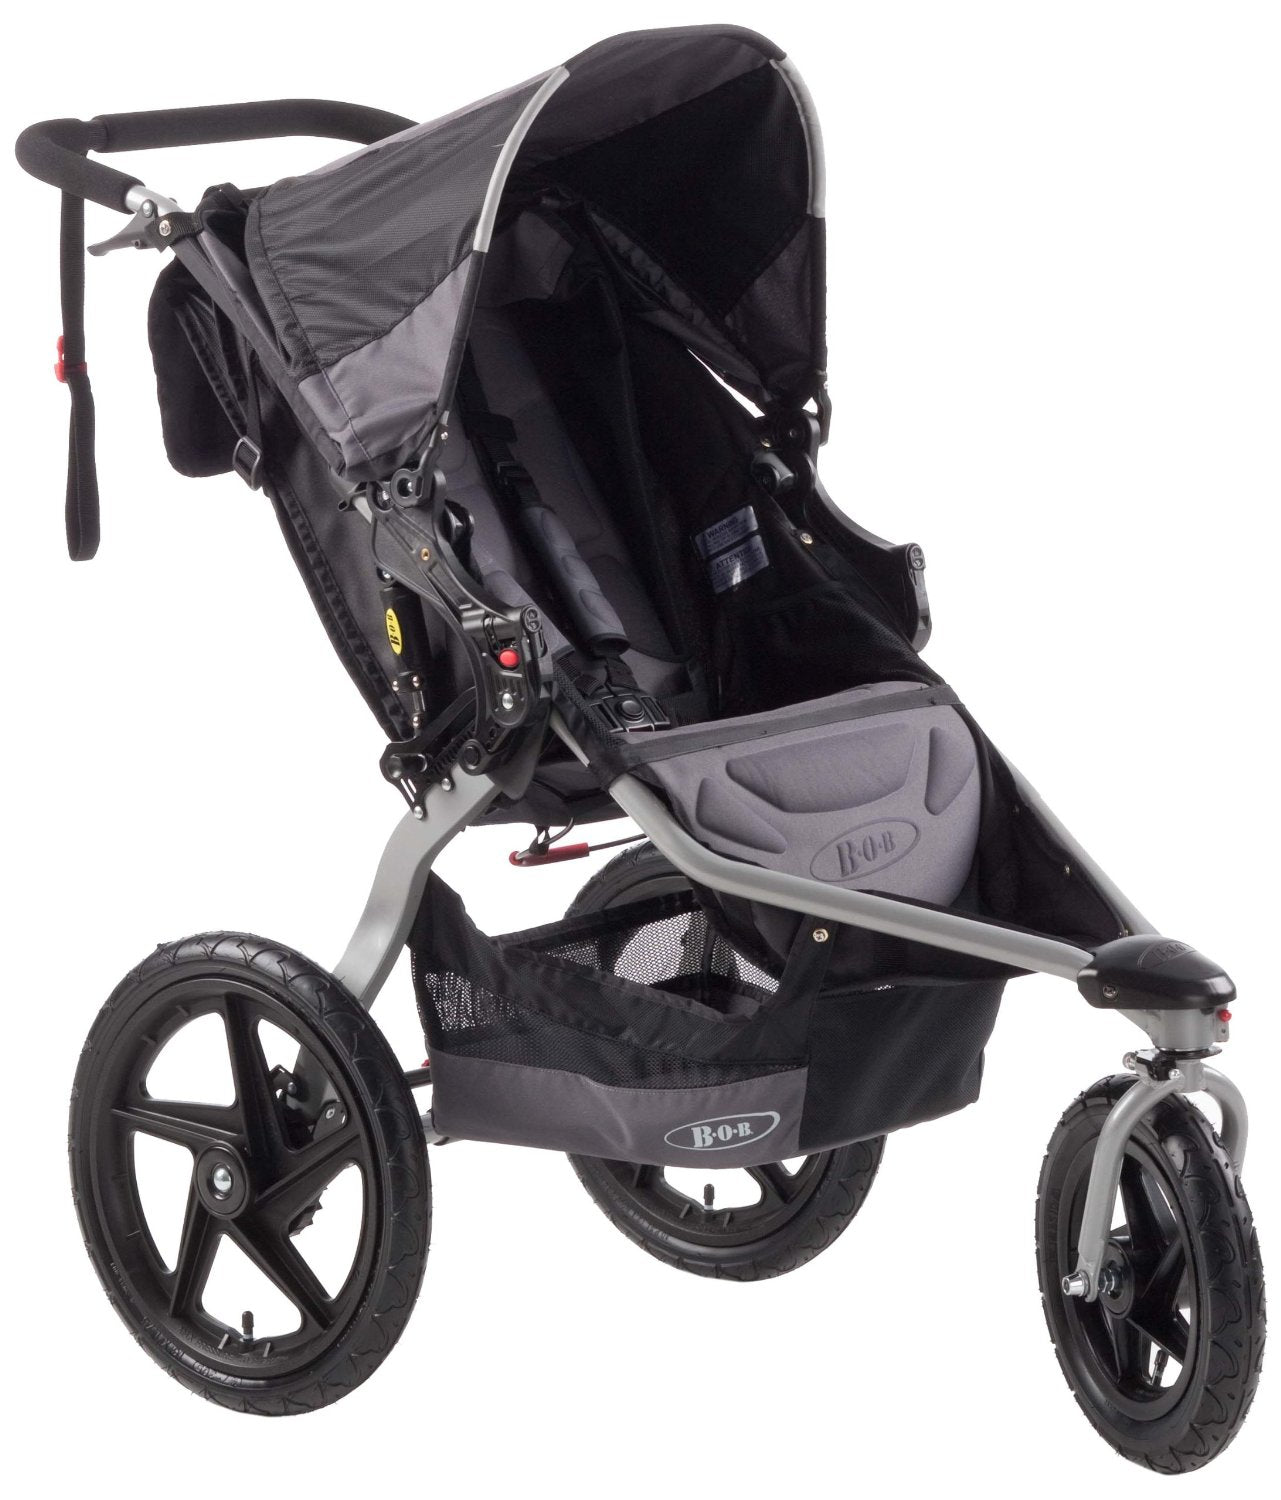 Stroller, Learn About The Benefits That Come With Owning 3 Wheel Baby Strollers